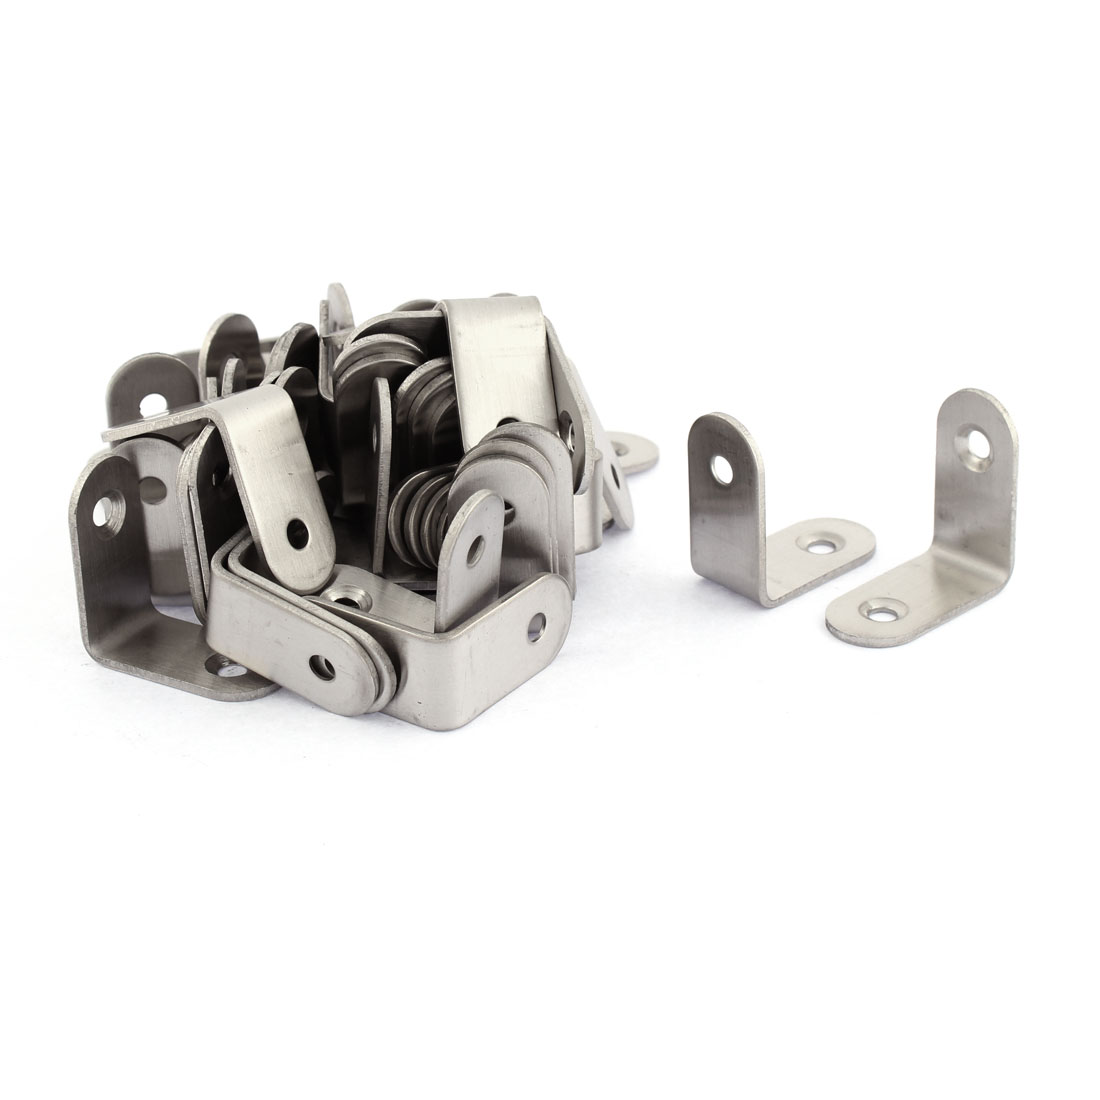 Stainless Steel L Shaped Corner Brace Joint Angle Bracket 30 x 30mm 50pcs